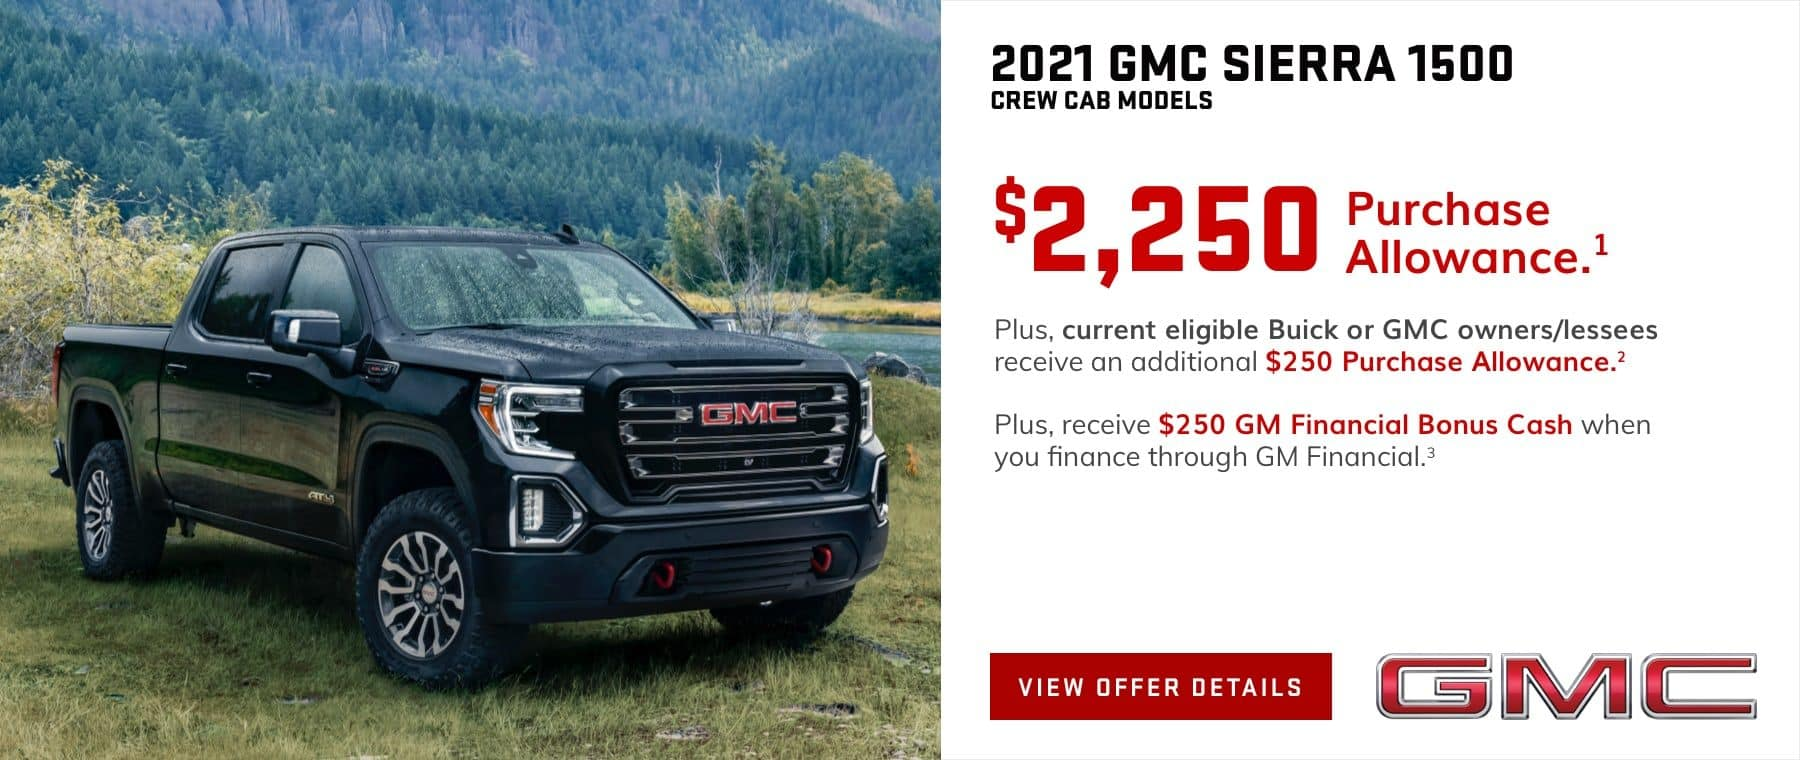 $2,250 Purchase Allowance.1 Plus, current eligible Buick or GMC owners/lessees receive an additional $250 Purchase Allowance.2 Plus, receive $250 GM Financial Bonus Cash when you finance through GM Financial.3